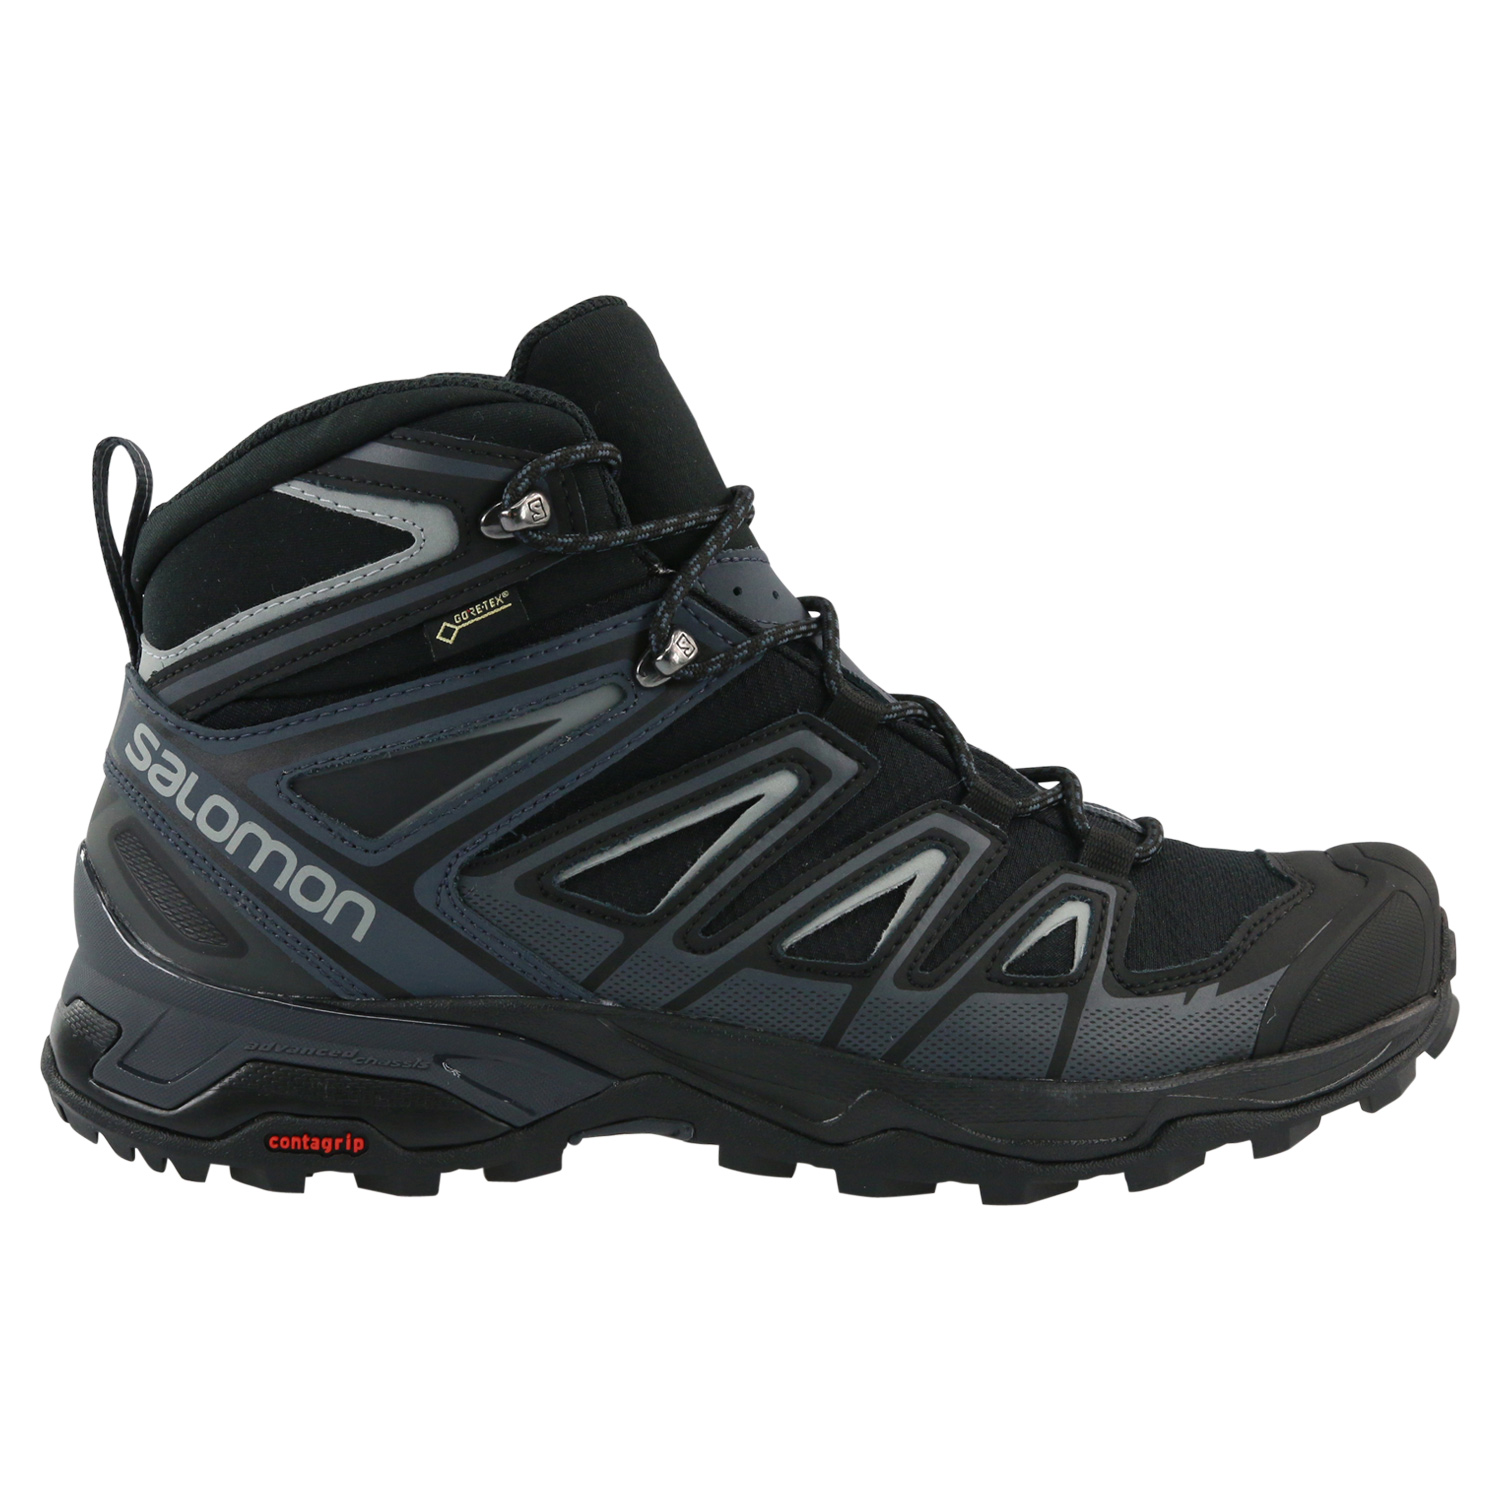 salomon x ultra mid 3 gtx wanderschuhe winterschuhe. Black Bedroom Furniture Sets. Home Design Ideas